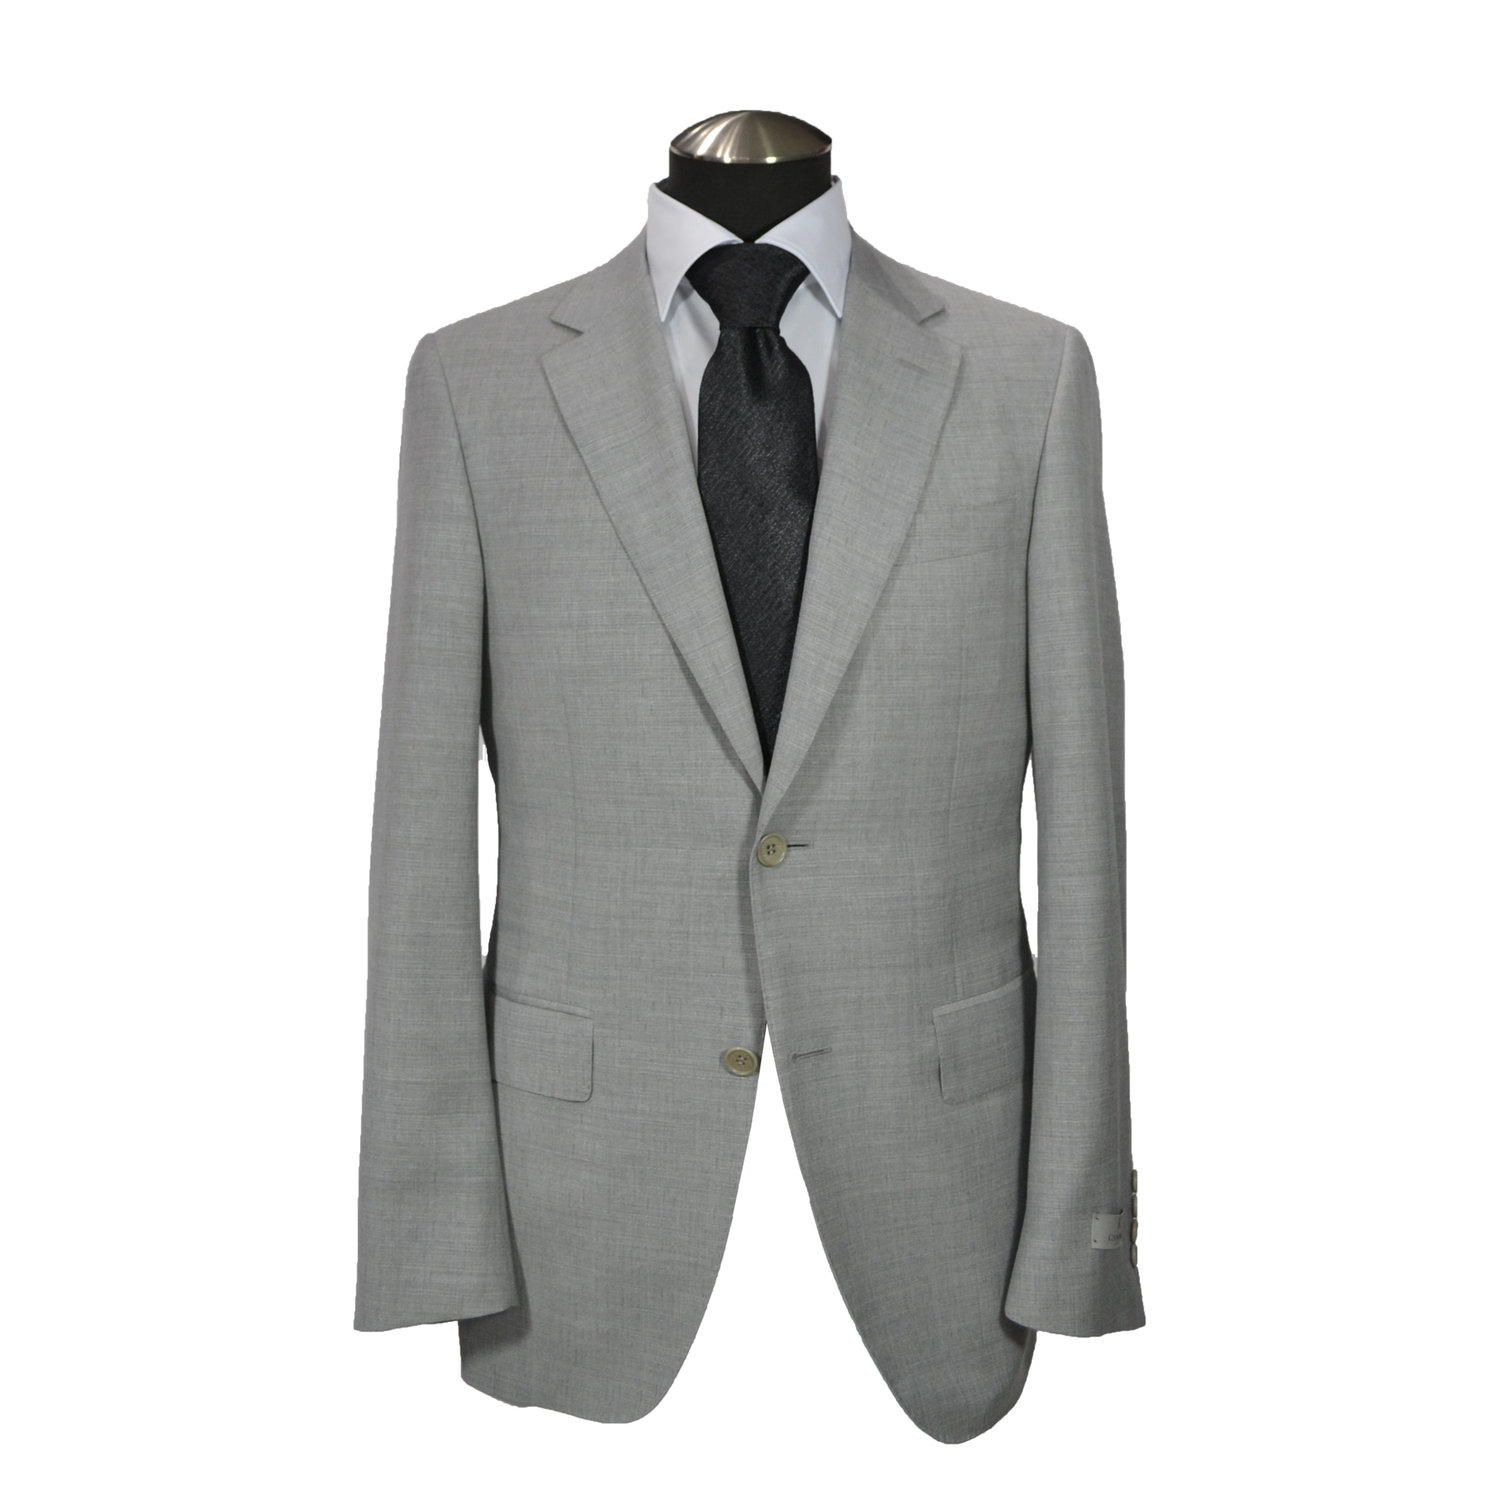 dc59d12ee5decb Canali Super 140S Impeccabile Wool Suit-Light Gray — Uomo San Francisco |  Luxury European Menswear